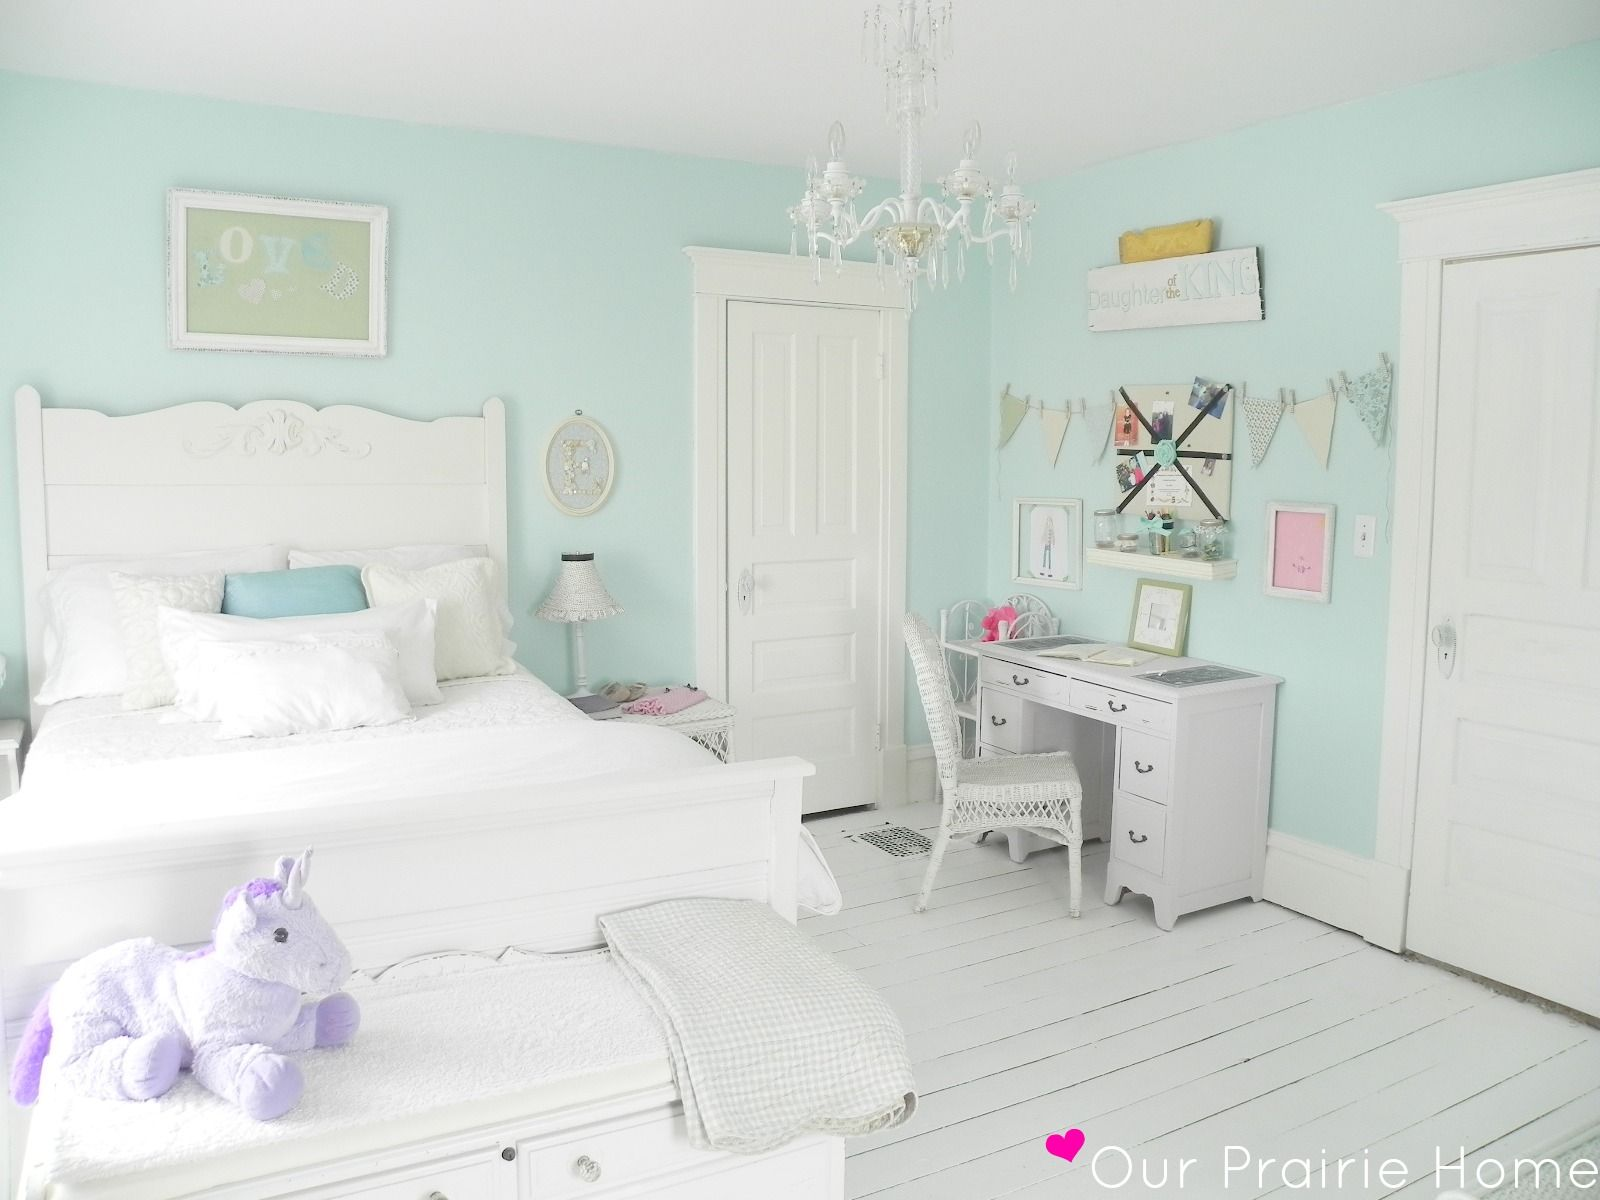 Mint S Room I Want To Do C With White Washed Floors And A Beautiful Clean Color Like This